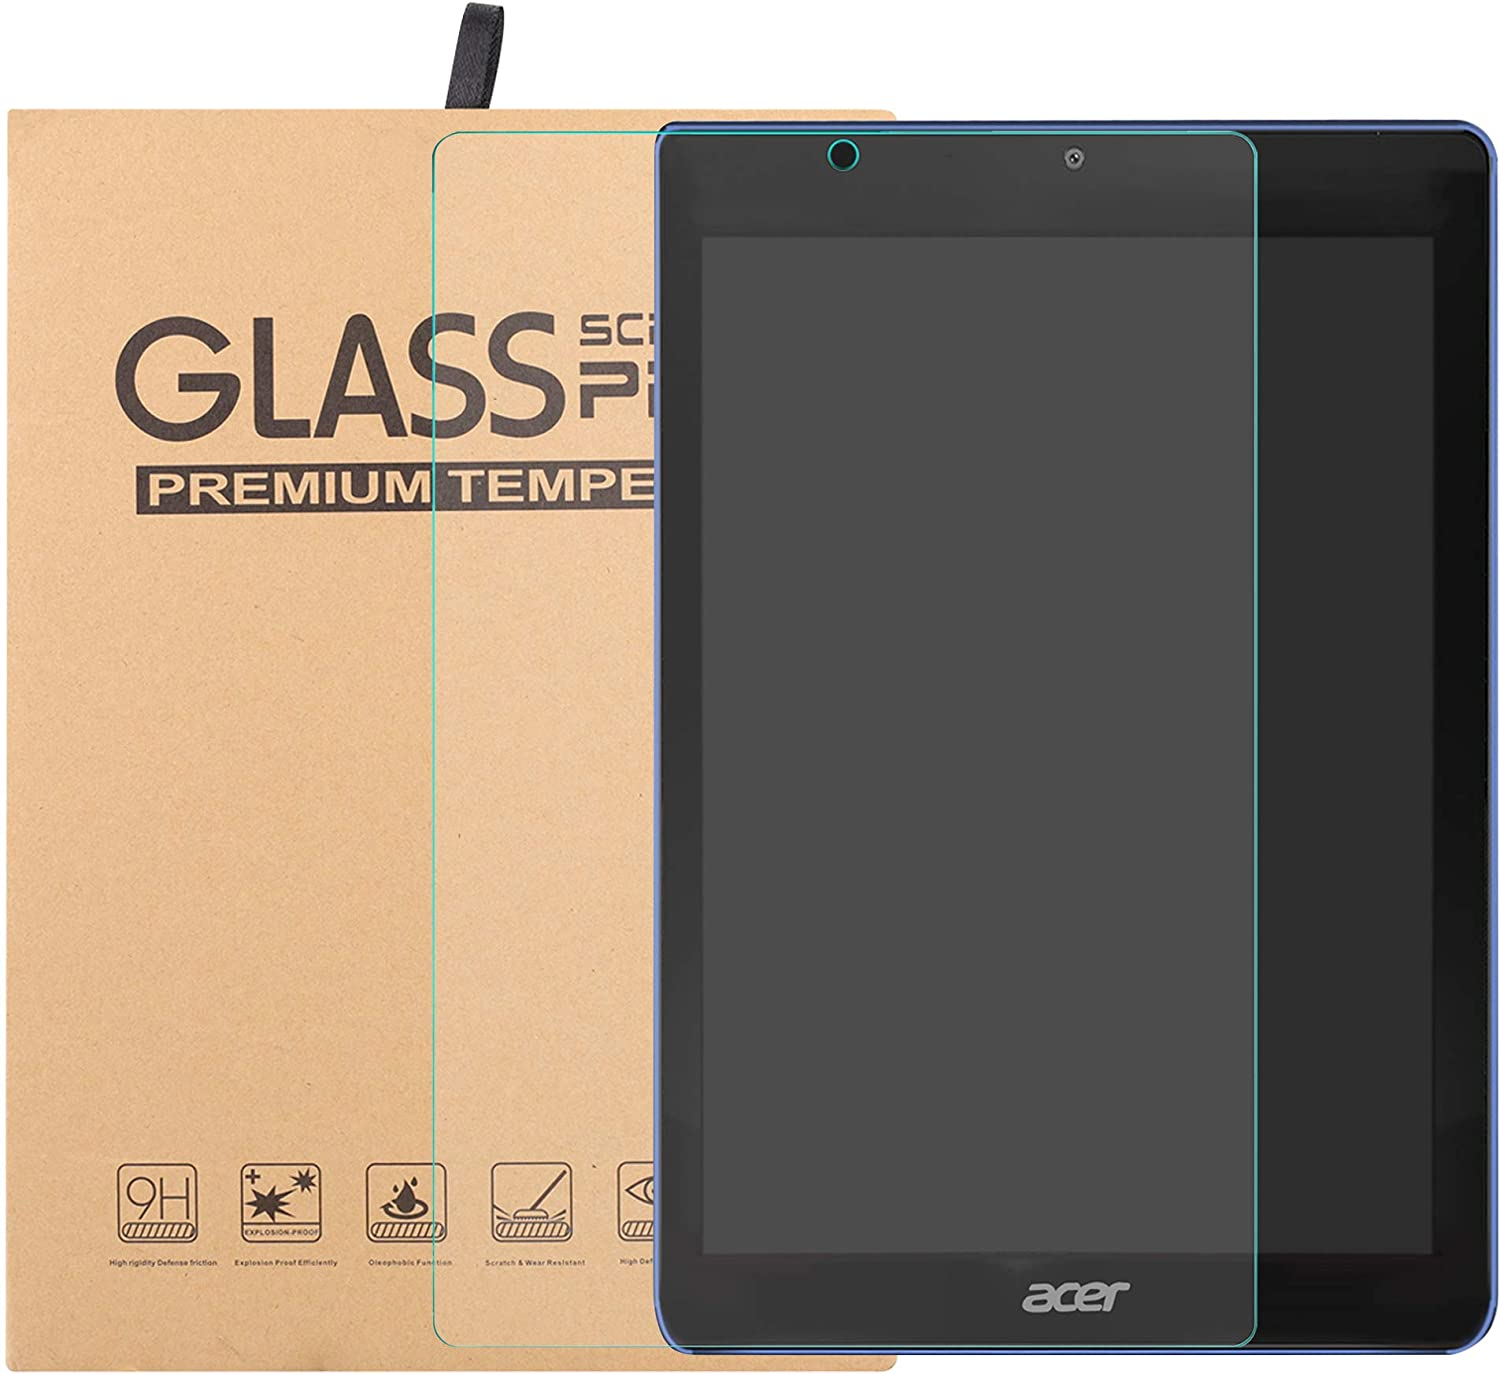 "Acer Iconia One 8 B1-870 Tempered Glass Screen Protector,Bige HD Clear Scratch-Resistant 9H Hardness Film for 8"" Acer Iconia One 8 B1-870 Tablet."